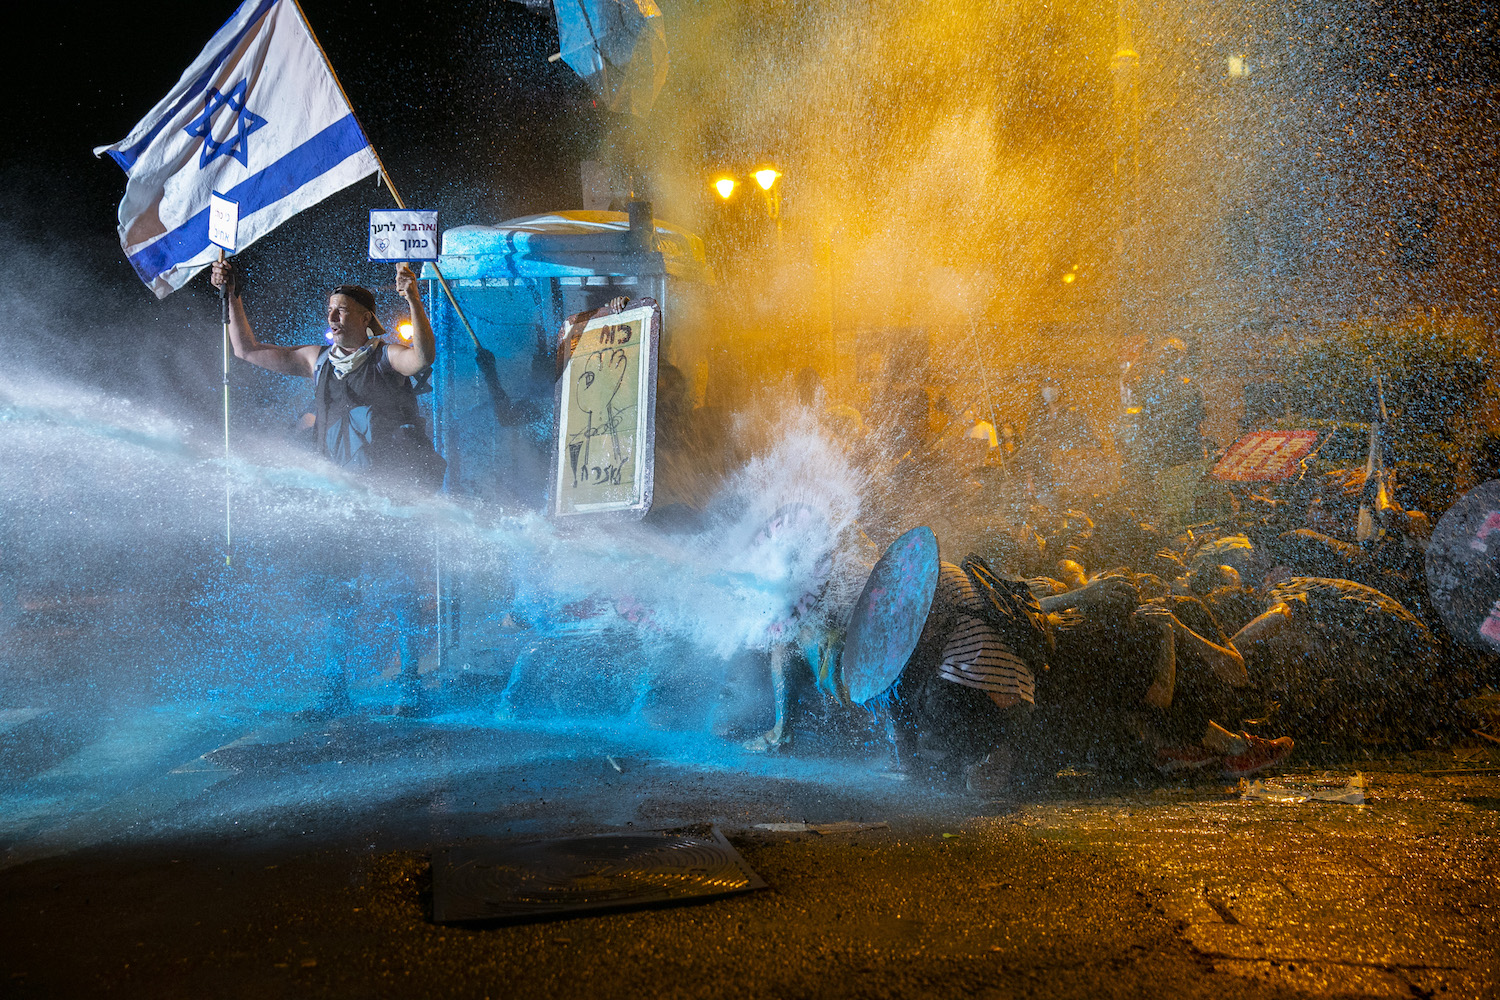 Israeli Police use a water cannon to disperse demonstrators during a protest against Prime Minister Benjamin Netanyahu, Jerusalem, July 25, 2020. (Olivier Fitoussi/Flash90)